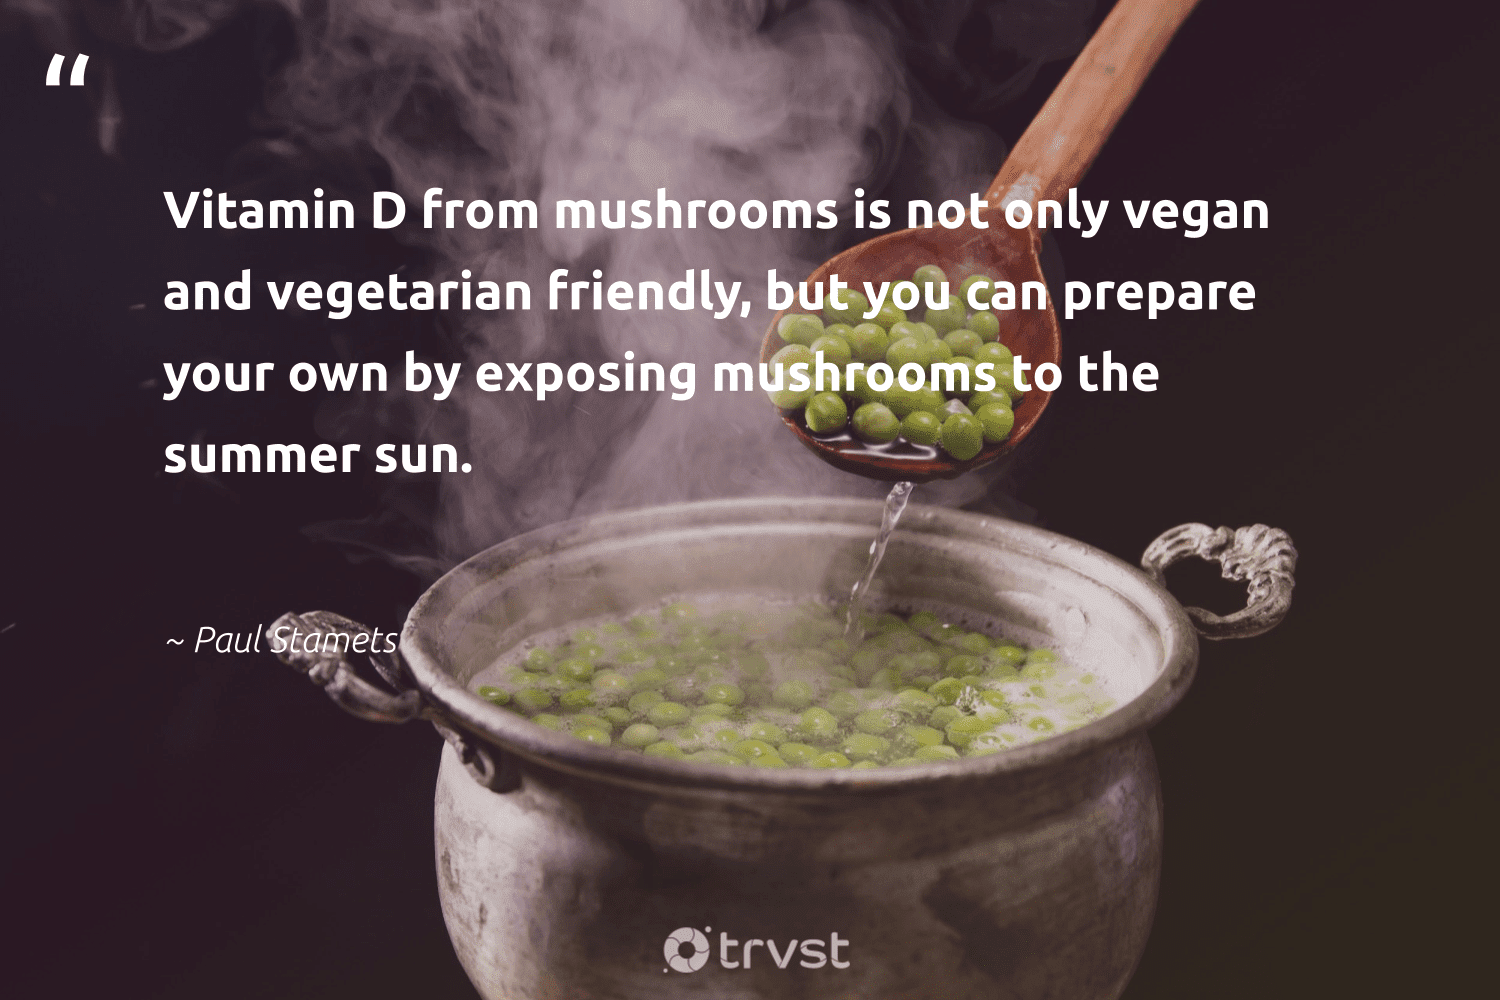 """""""Vitamin D from mushrooms is not only vegan and vegetarian friendly, but you can prepare your own by exposing mushrooms to the summer sun.""""  - Paul Stamets #trvst #quotes #vegan #vegetarian #veganfood #govegan #greenliving #fashion #socialimpact #whatveganseat #veganfoodshare #sustainable"""